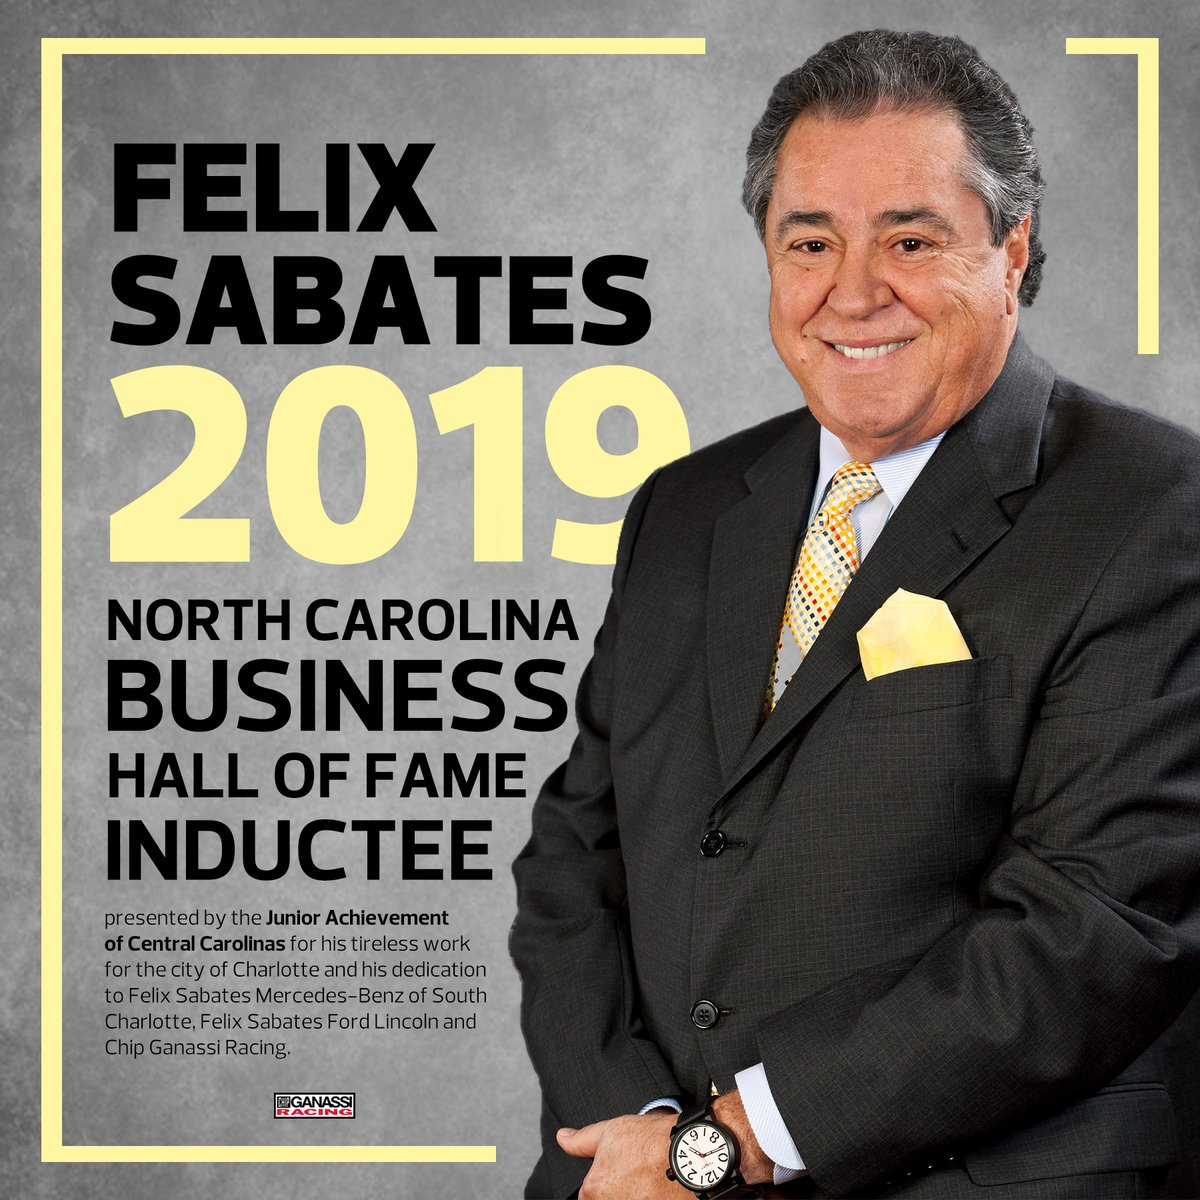 Join us in congratulating Felix Sabates on his induction into the North Carolina Business Hall of Fame presented by @JACenCarolinas!